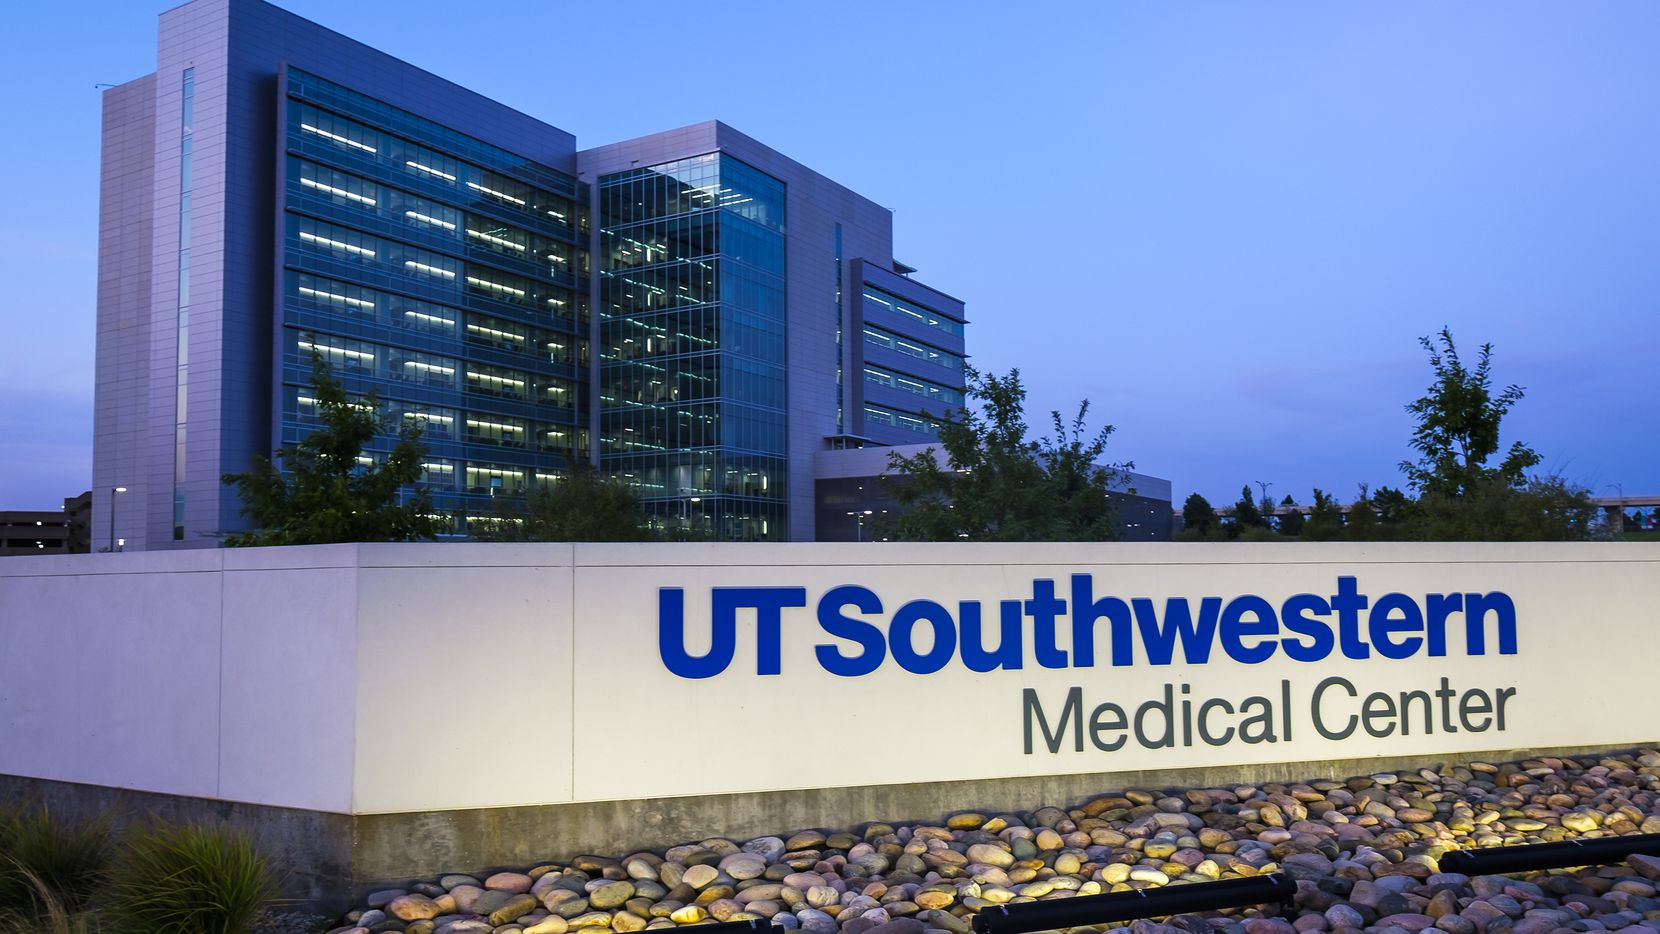 West Campus Building 3, 2001 Inwood Rd.,  at UT Southwestern Medical Center on Wednesday, Aug. 28, 2019, in Dallas.